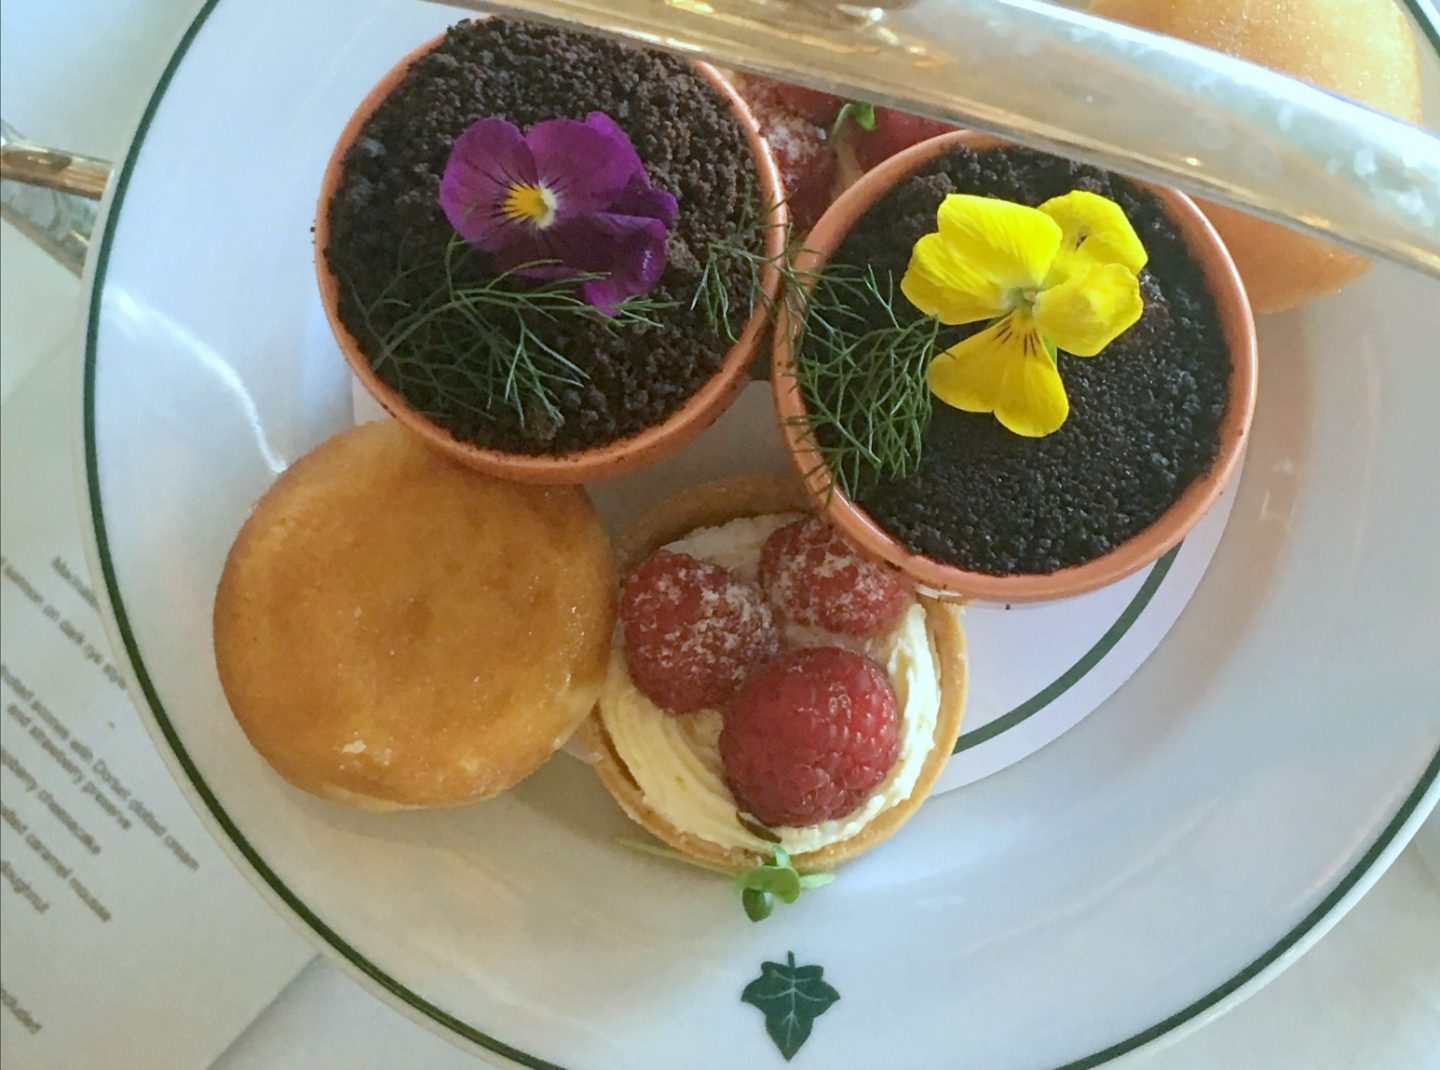 Afternoon tea at the ivy www.extraordinarychaos.com